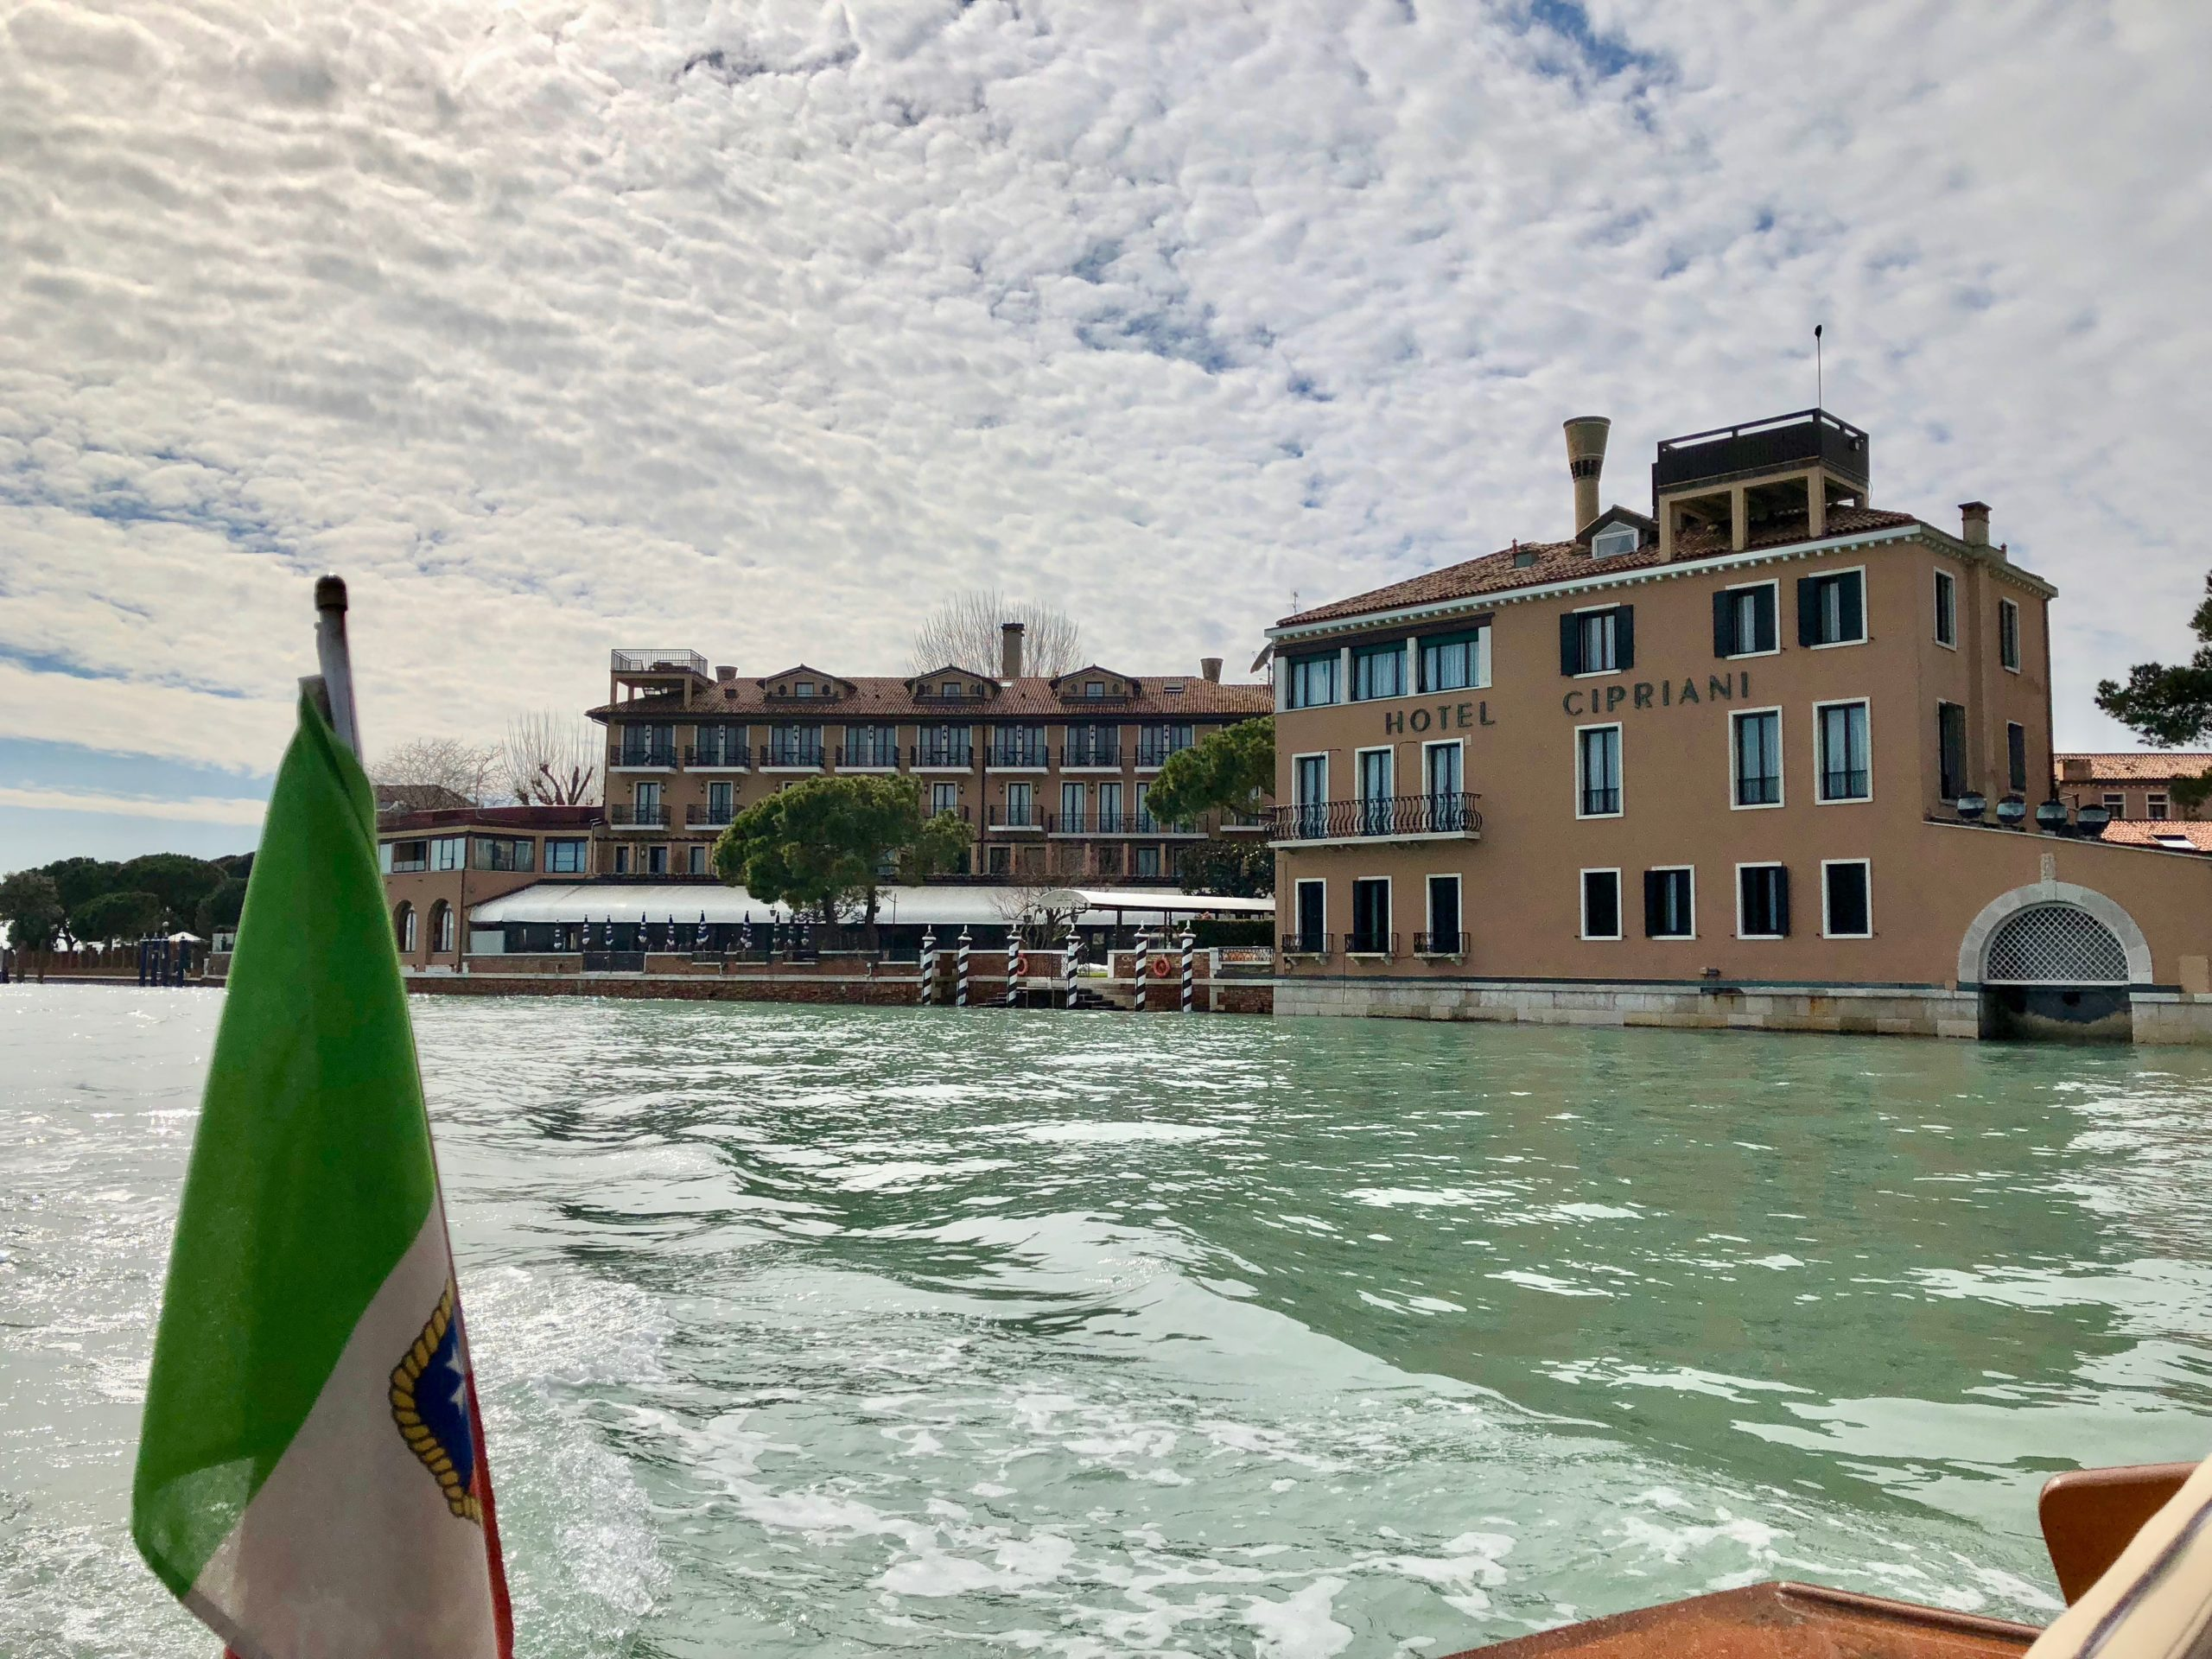 cipriani from lagoon with flag